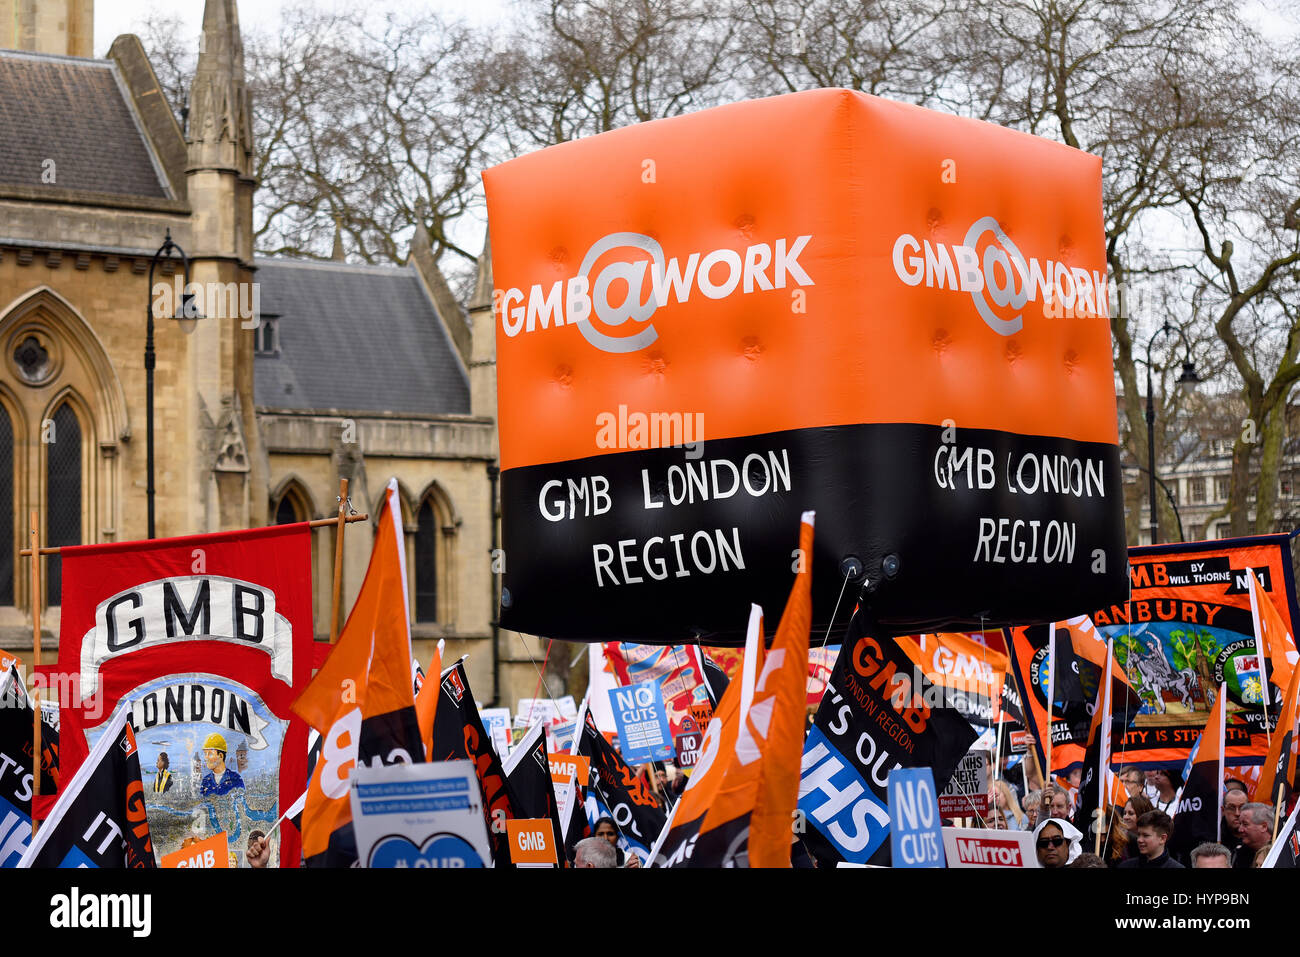 GMB union London Region inflatable balloon during the 'Our NHS' support for the National Health Service - Stock Image